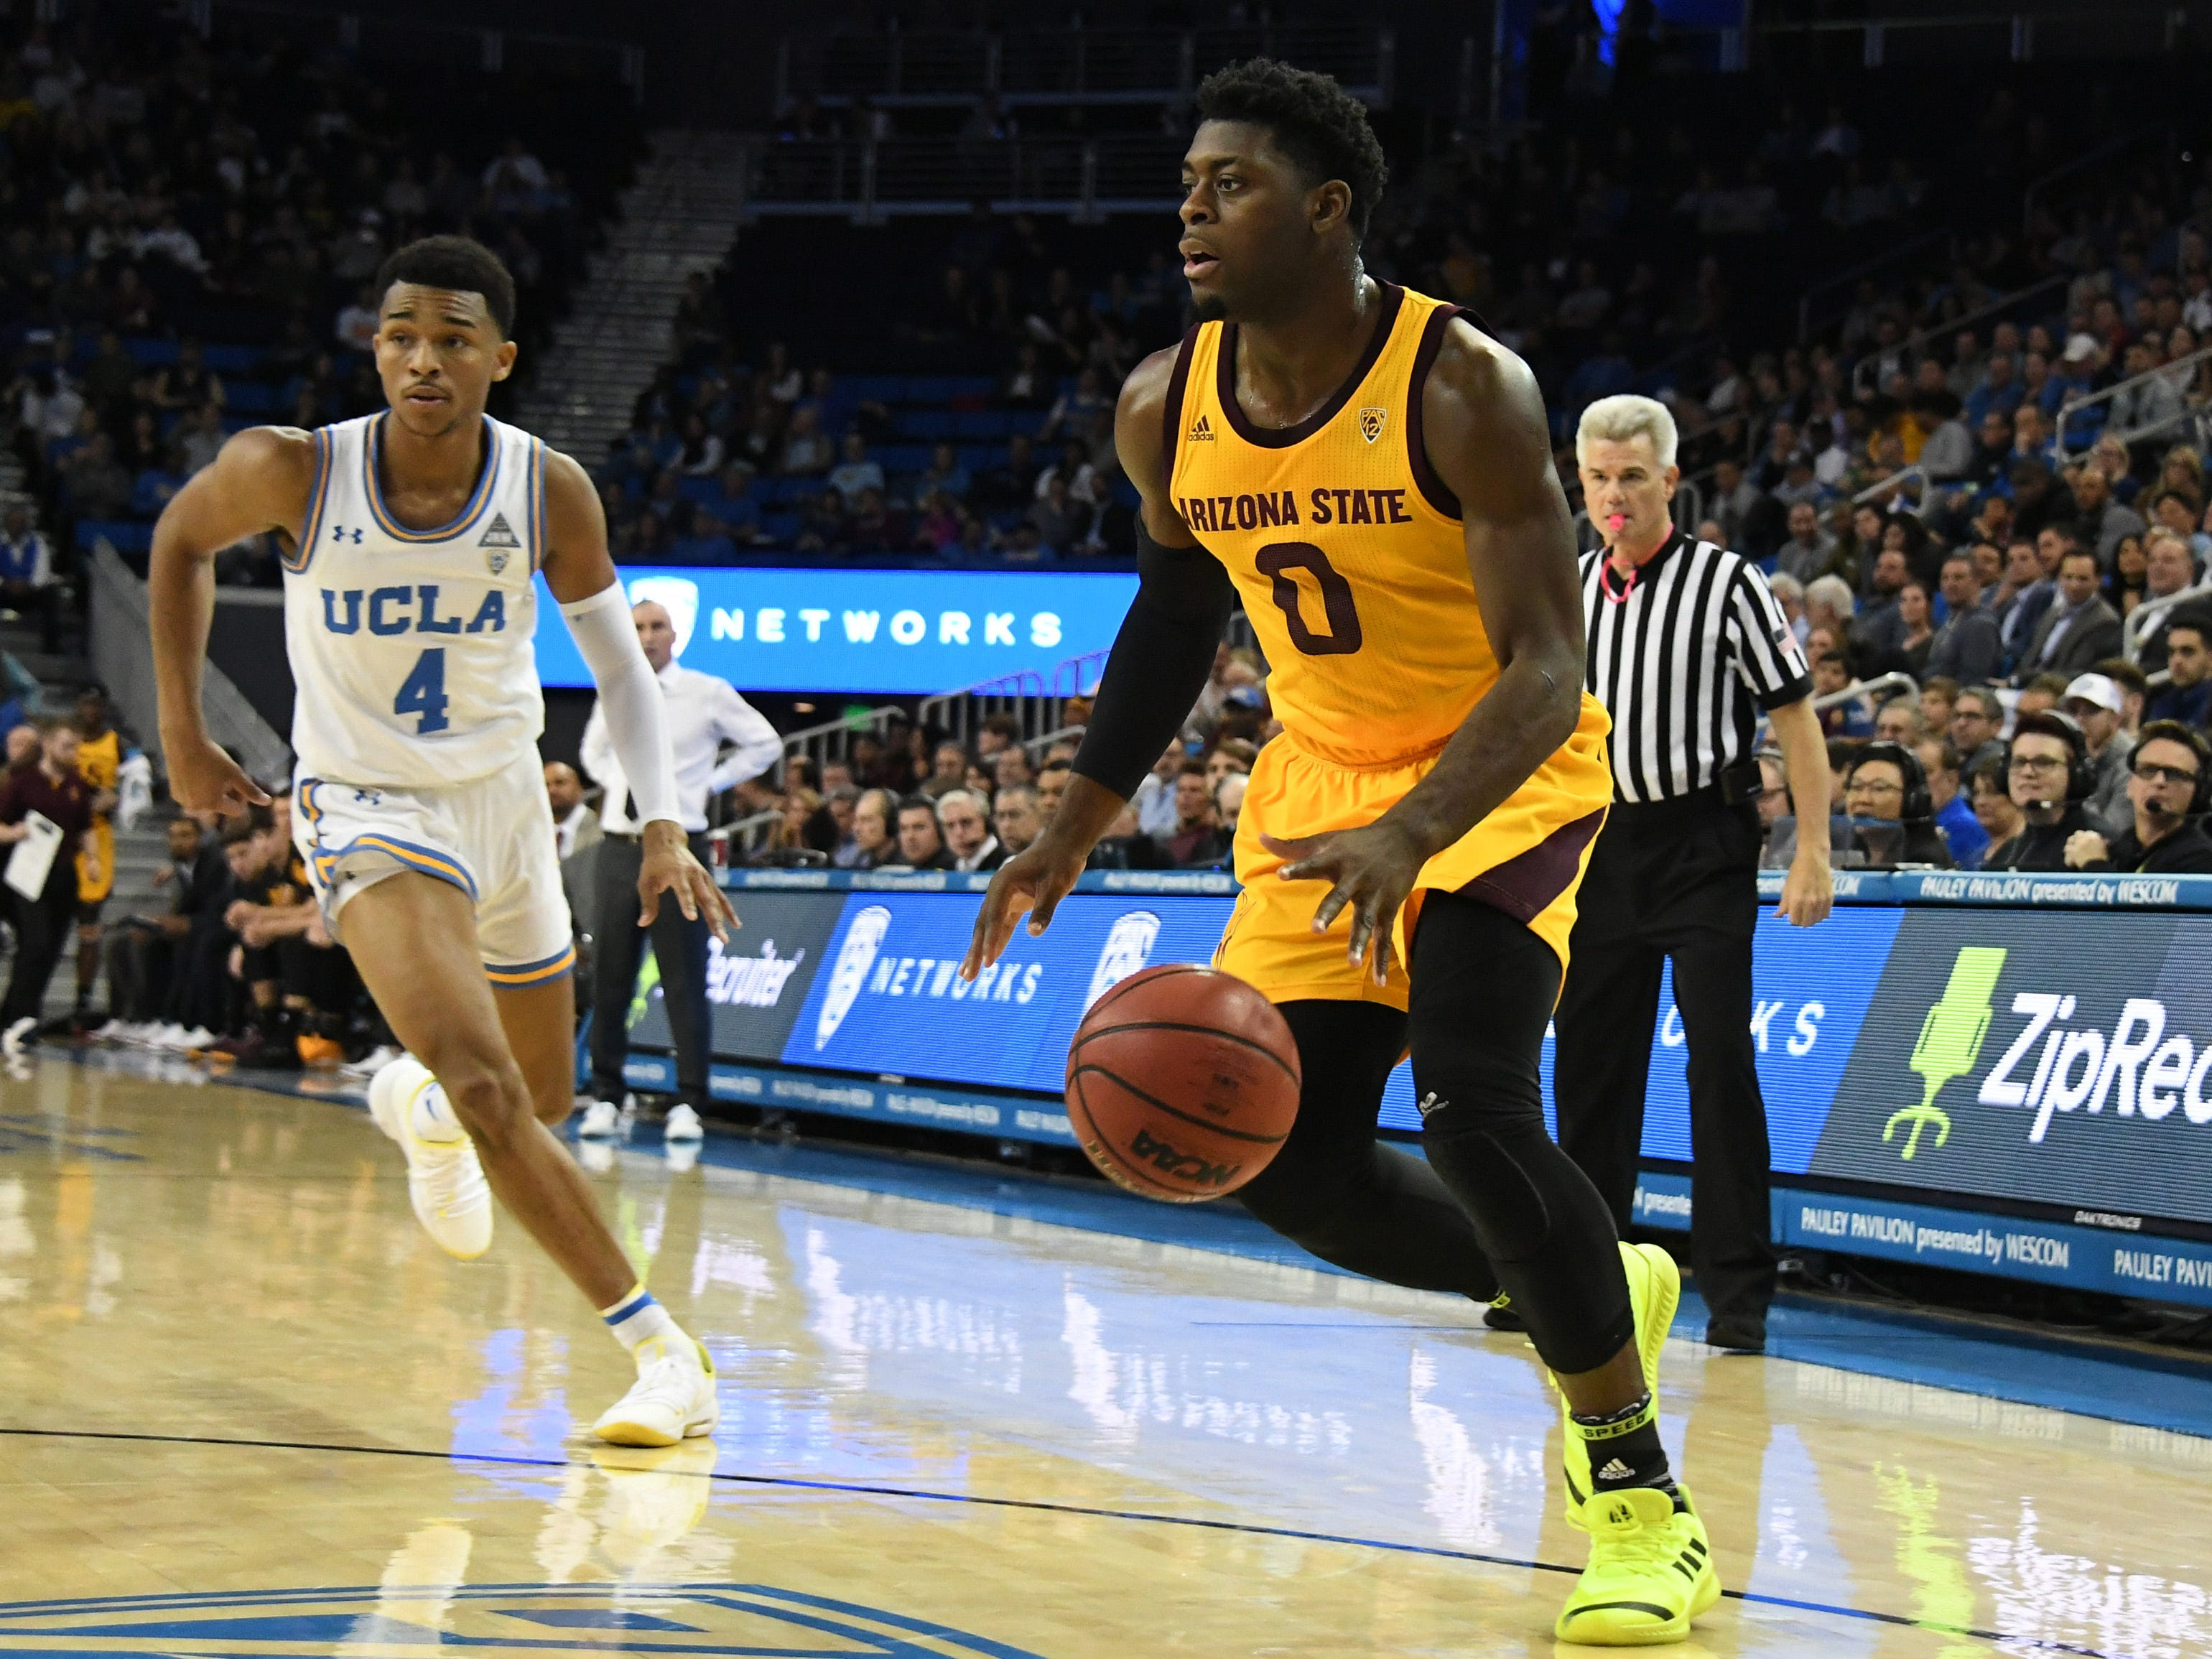 Jan 24, 2019; Los Angeles, CA, USA; Arizona State Sun Devils guard Luguentz Dort (0) dribbles to the basket against UCLA Bruins guard Jaylen Hands (4) during the first half at Pauley Pavilion. Mandatory Credit: Richard Mackson-USA TODAY Sports